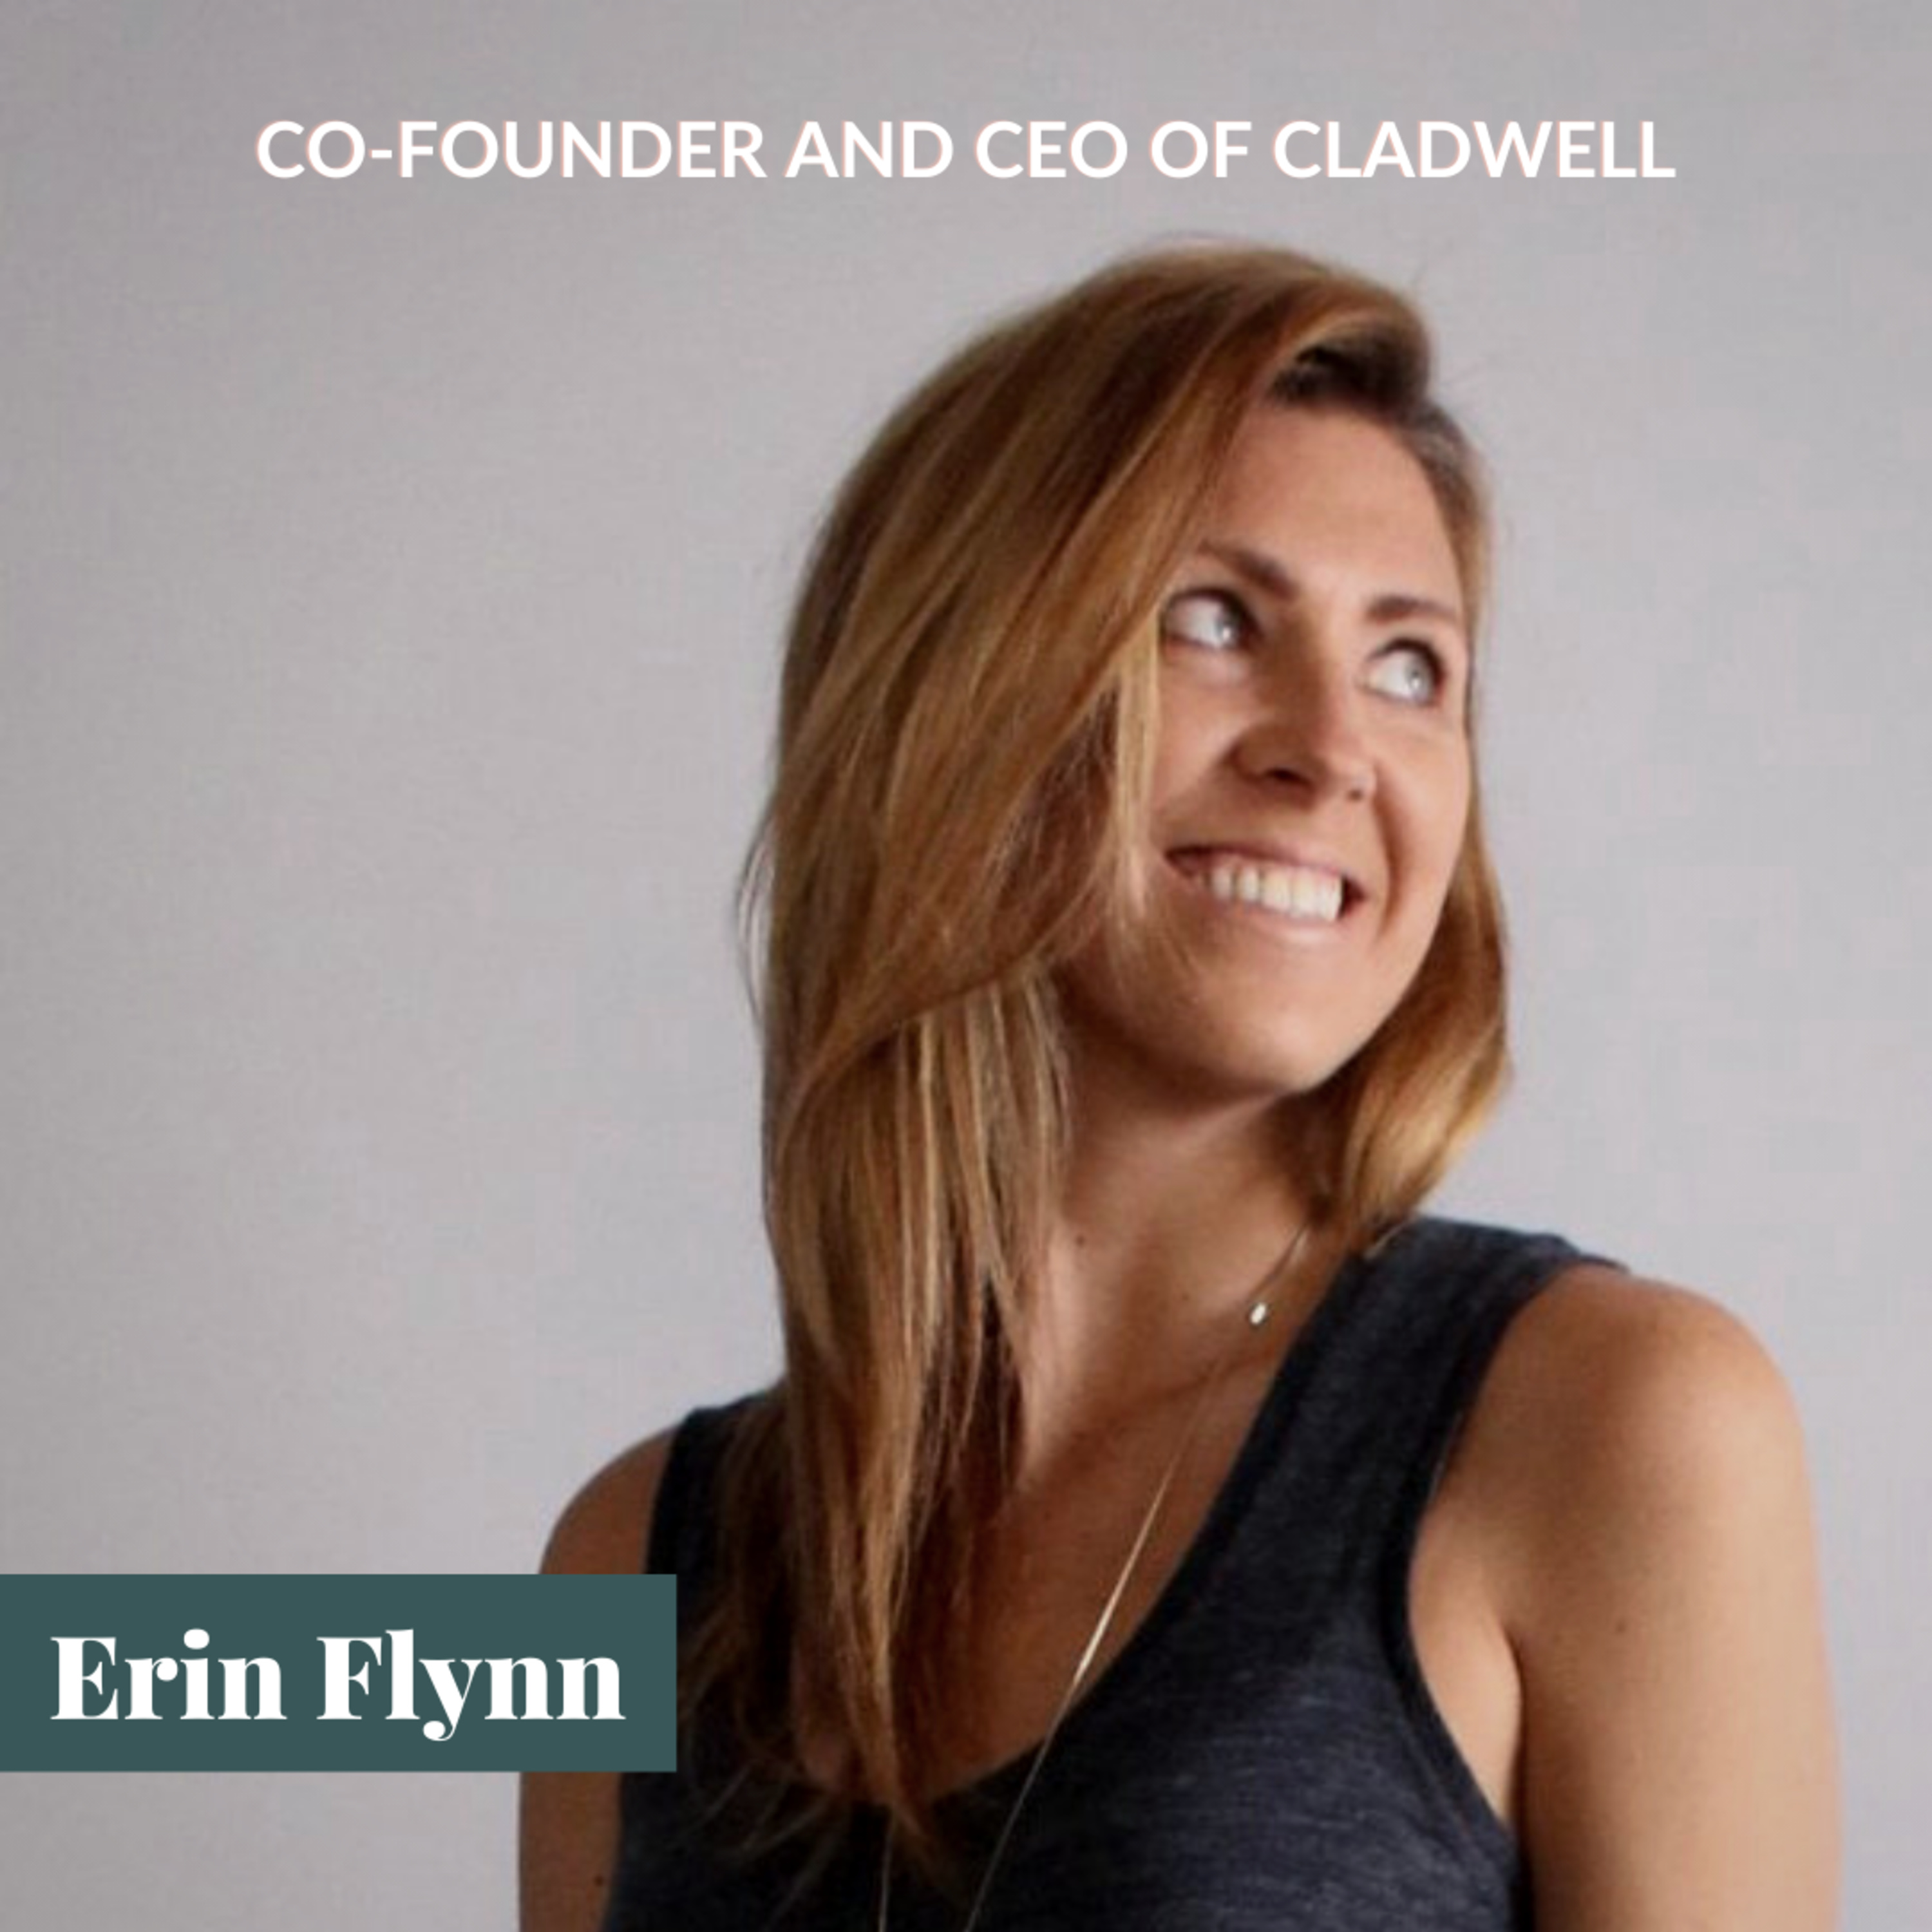 Meet Erin Flynn, Co-founder and CEO of Cladwell - An app that helps you experience the freedom of a capsule wardrobe